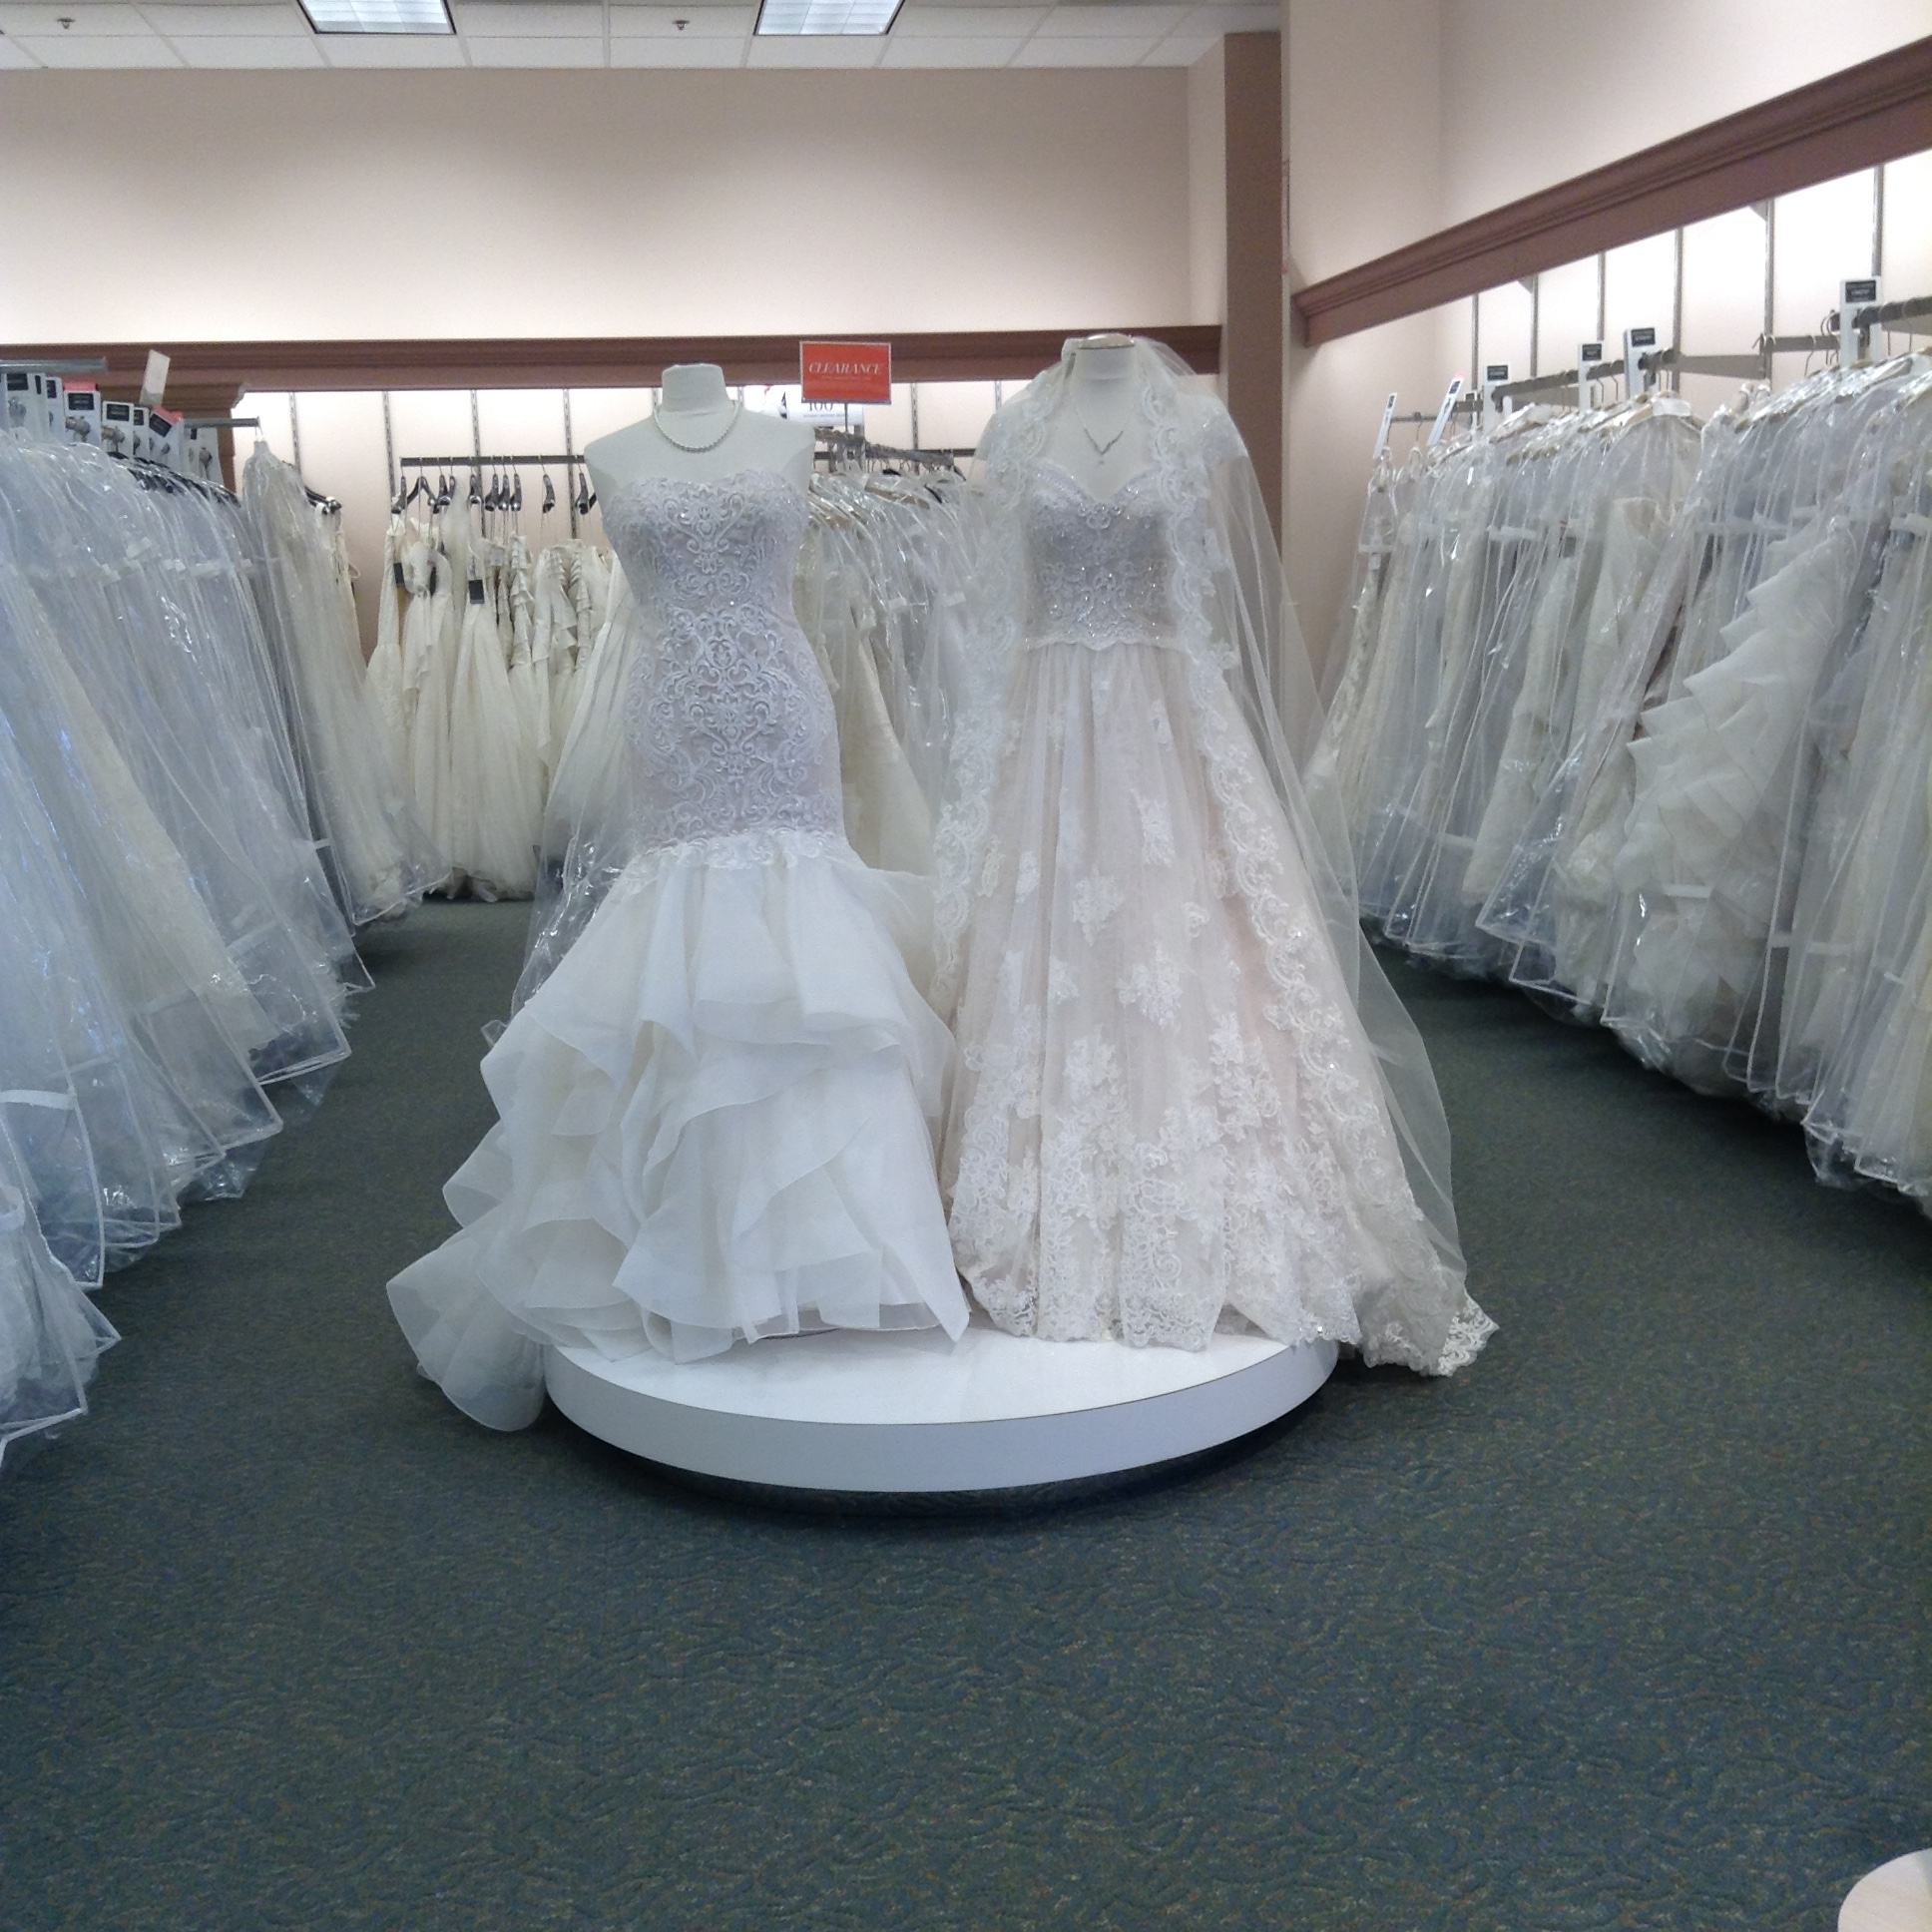 David S Bridal 713 S Perryville Rd Rockford Il 61108 Yp Com